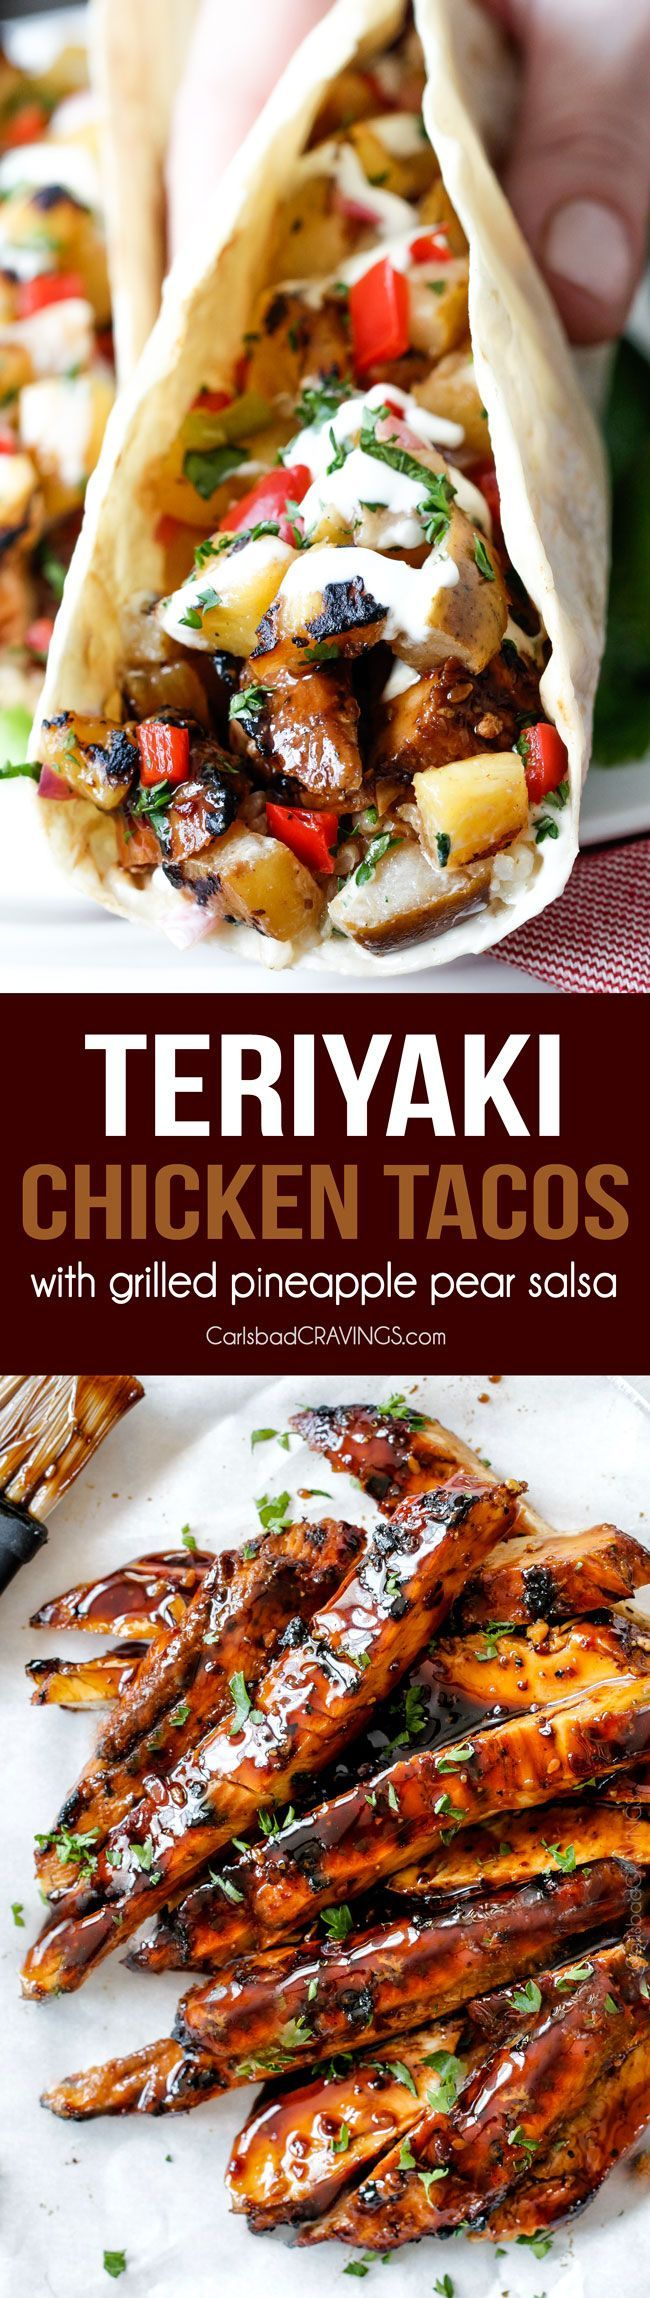 Teriyaki Chicken Tacos smothered with the BEST easy teriyaki sauce and piled with Grilled Pineapple Pear Salsa will be your new favorite taco! Company worthy but everyday easy!: